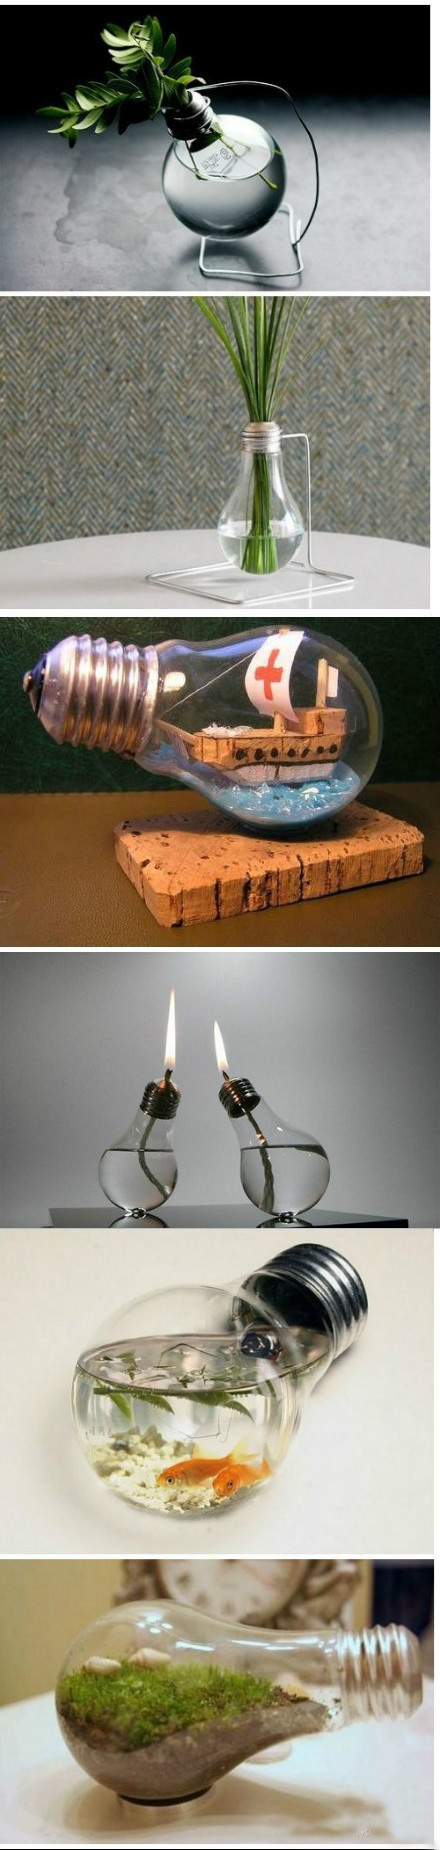 The different uses of a no longer working light bulb. Geek Living Blog: Art, Bulb Ideas, Crafts Lightbulbs, Lightbulb Crafts, Craft Ideas, Diy, Crafty Ideas